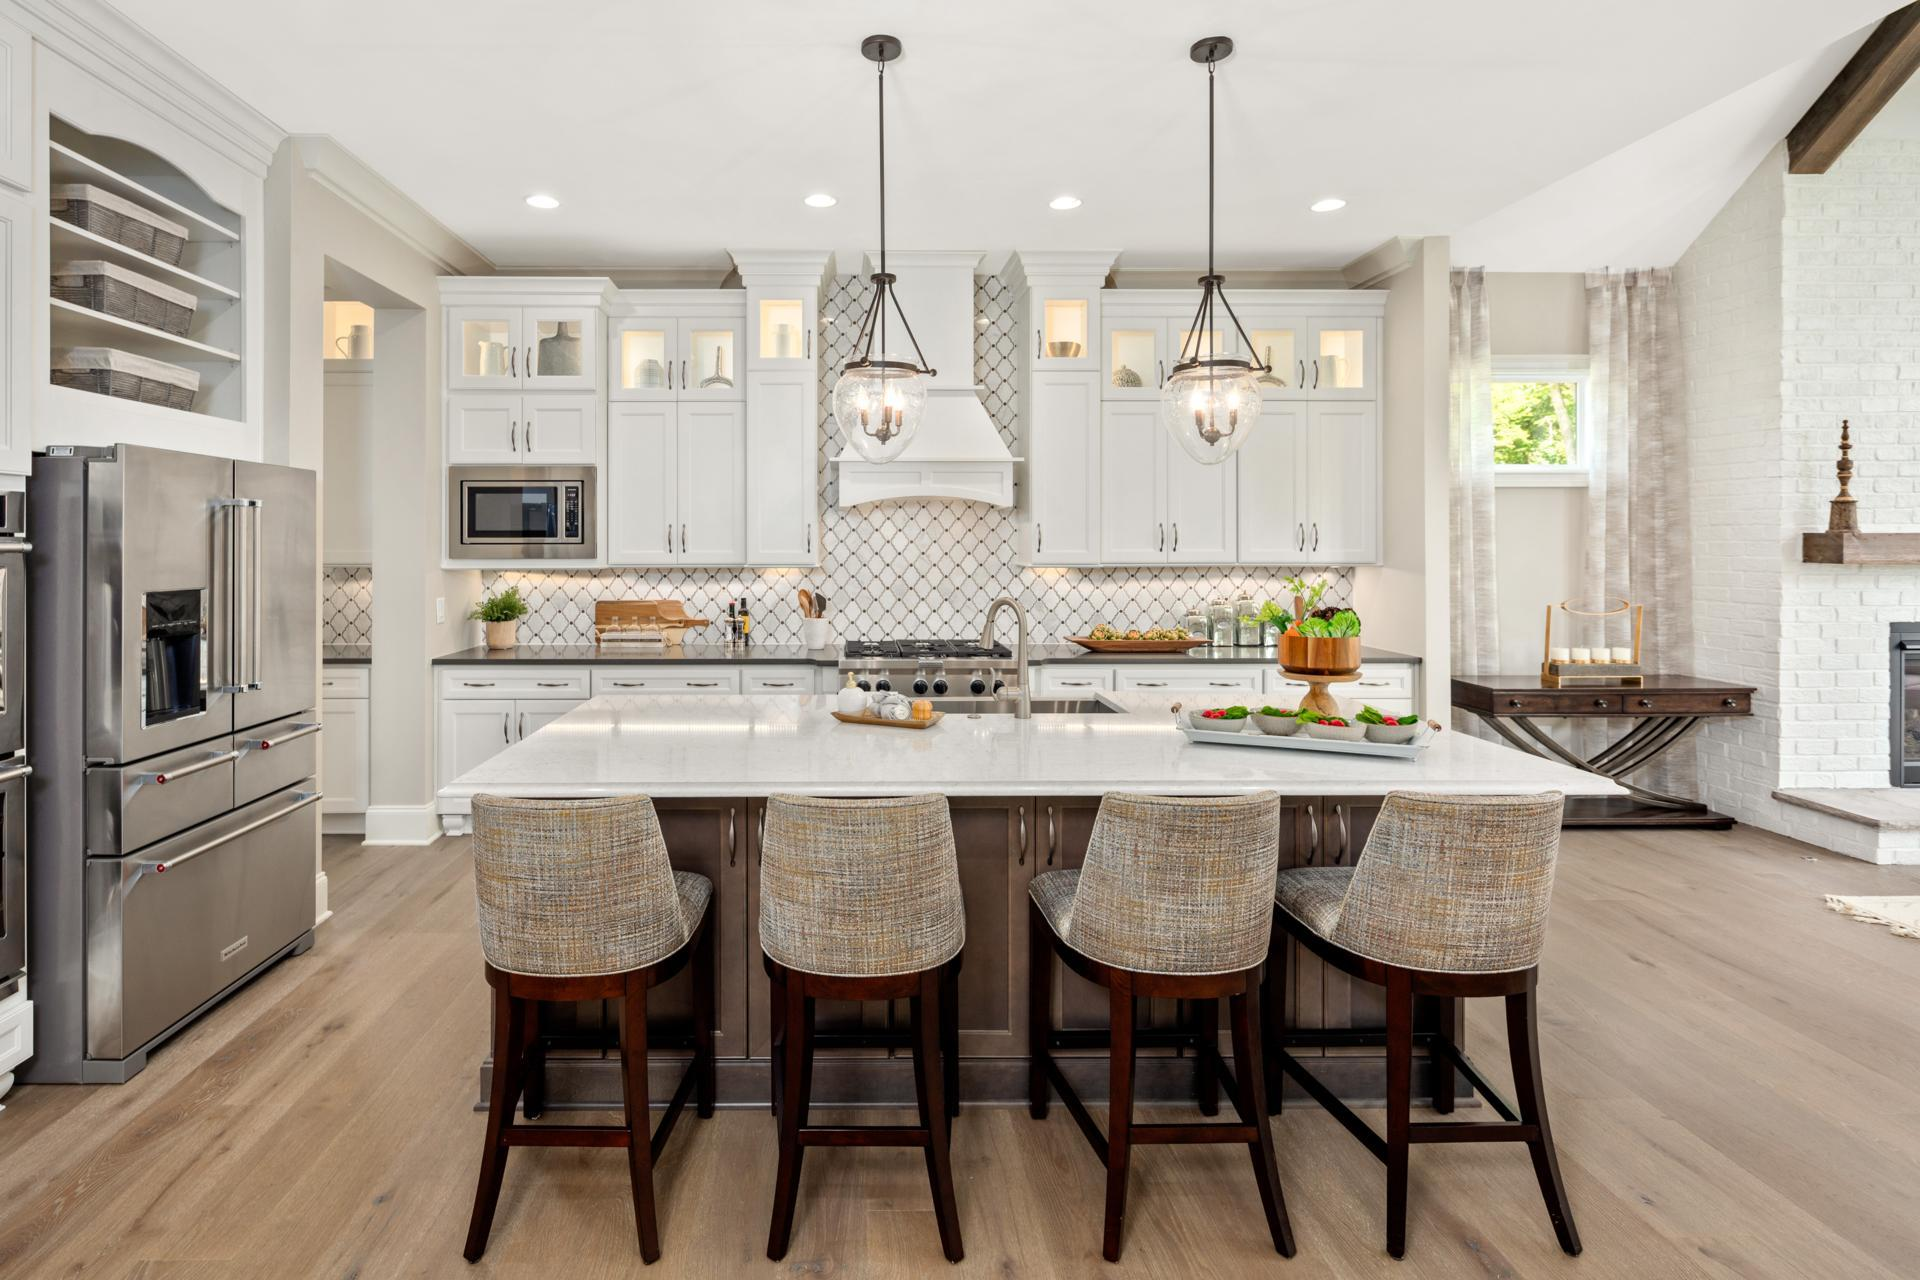 Kitchen featured in the Belterra By Drees Homes in Nashville, TN